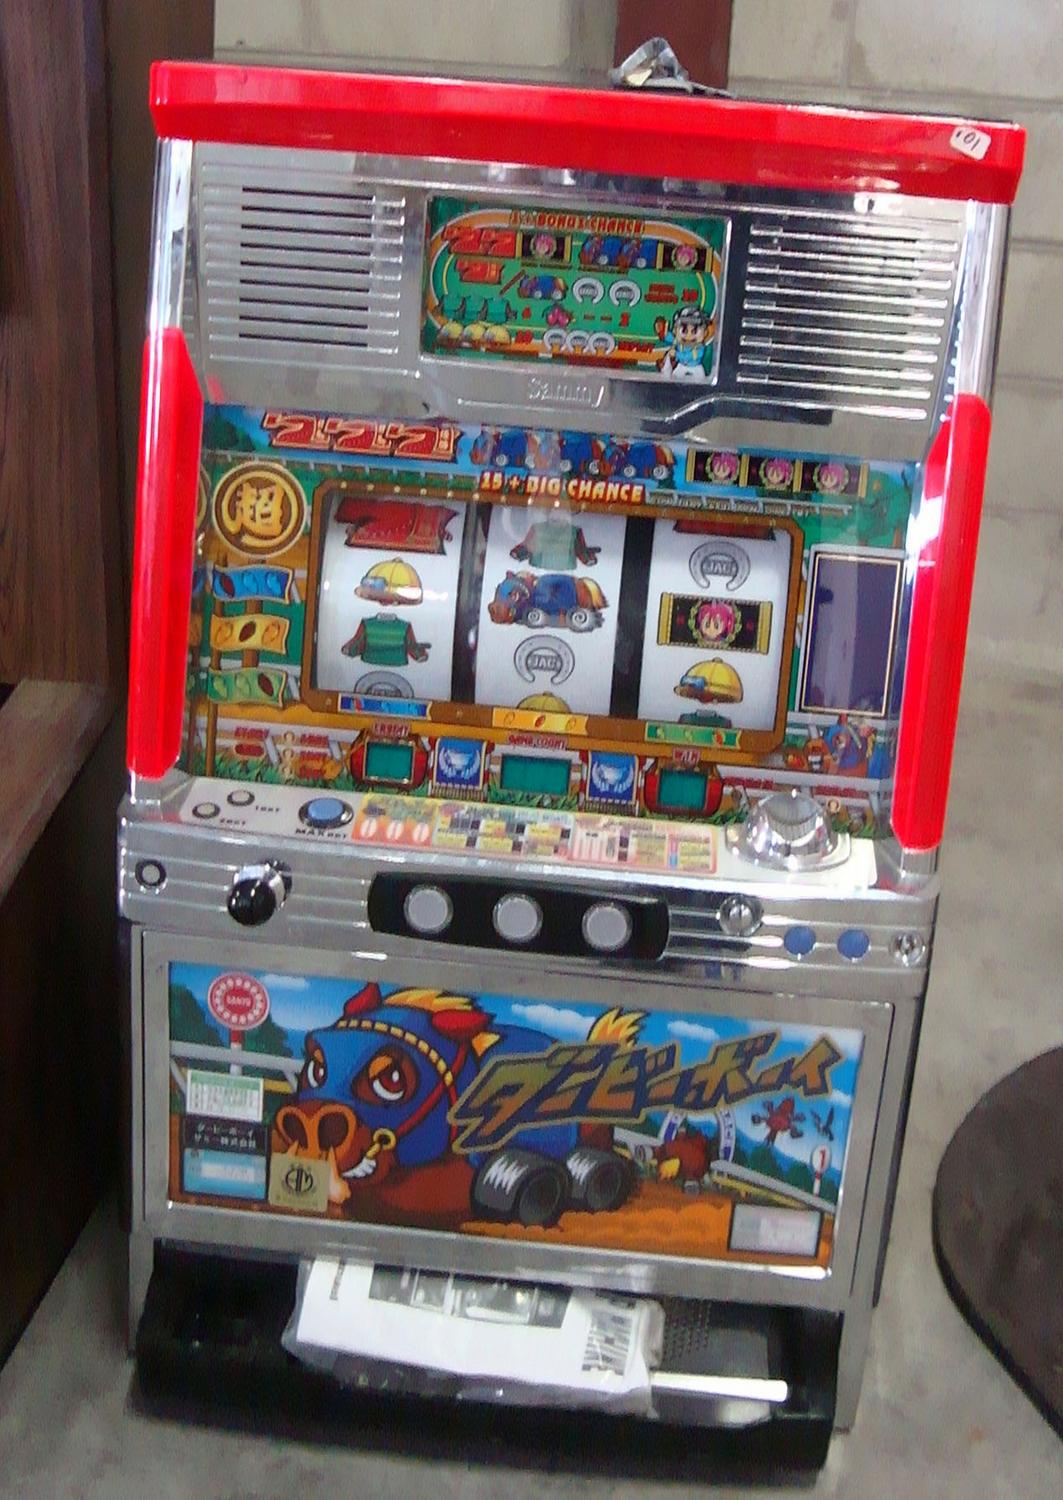 Tragaperra Aladdins Treasure bally slot machines-583380